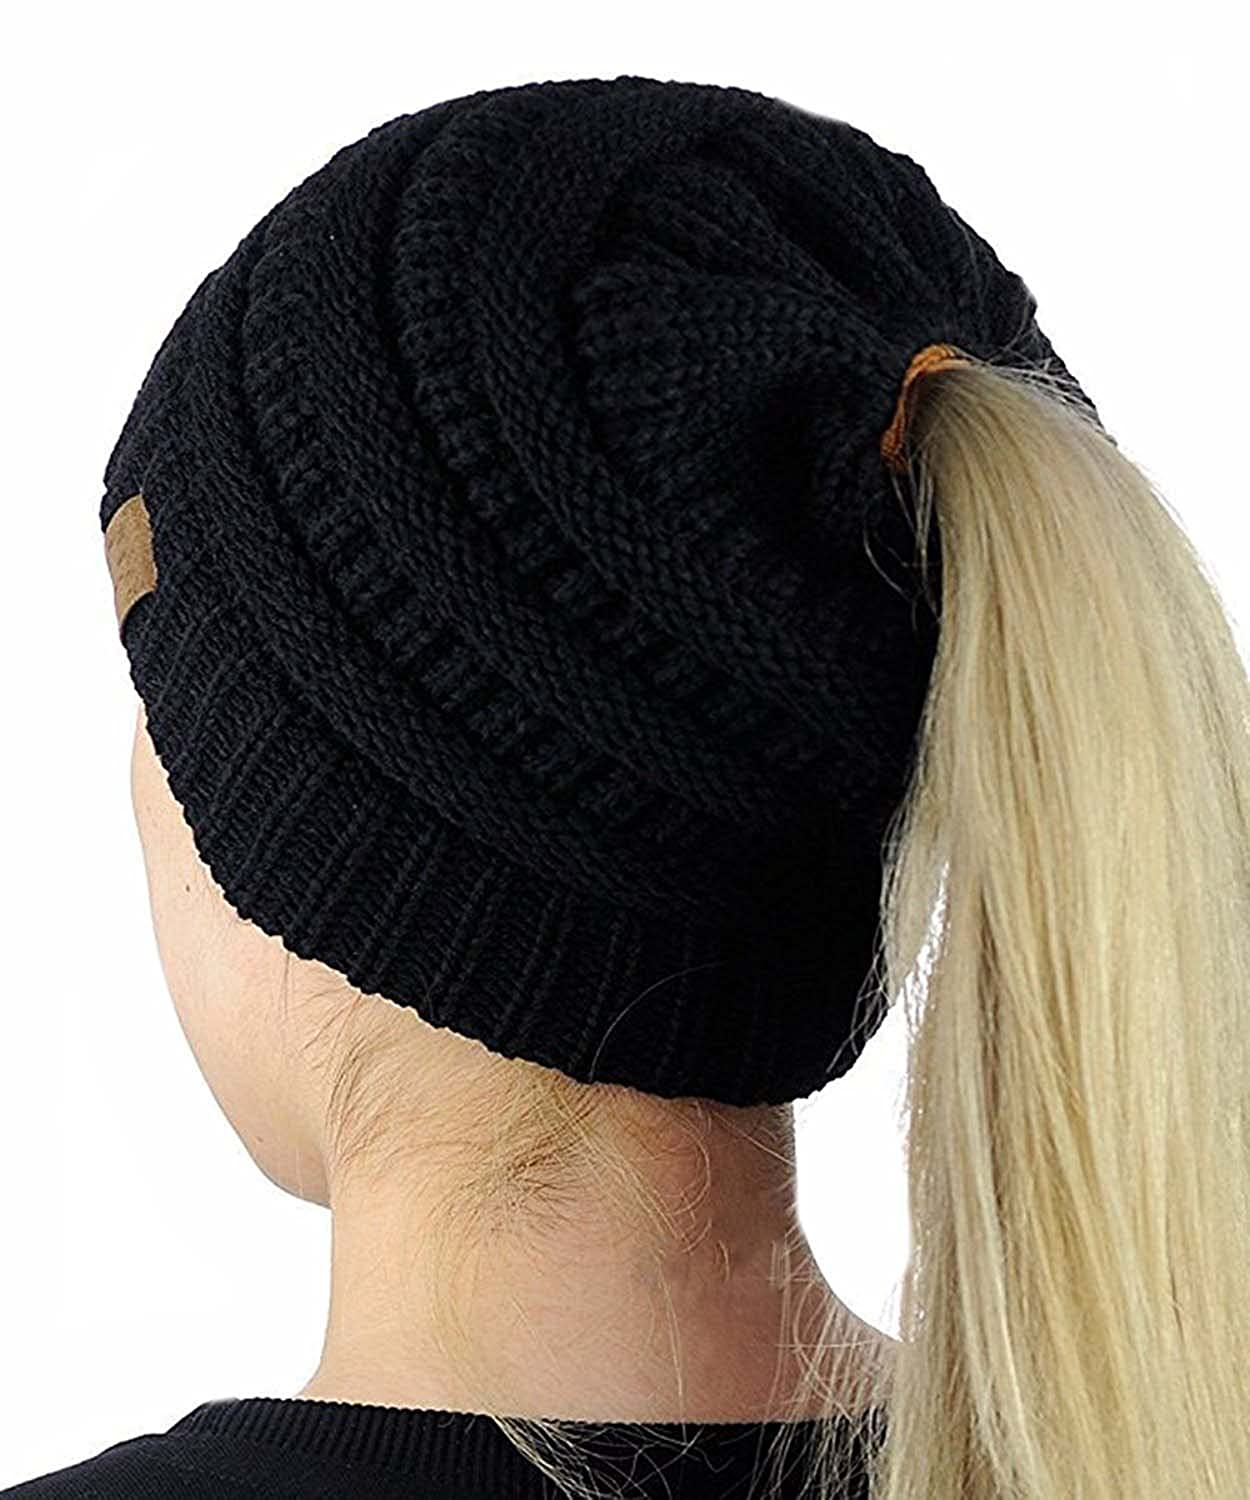 e1507d2a3 Gagget Women's Winter Knit Cup Beanie Tail Ponytail Winter Warm ...